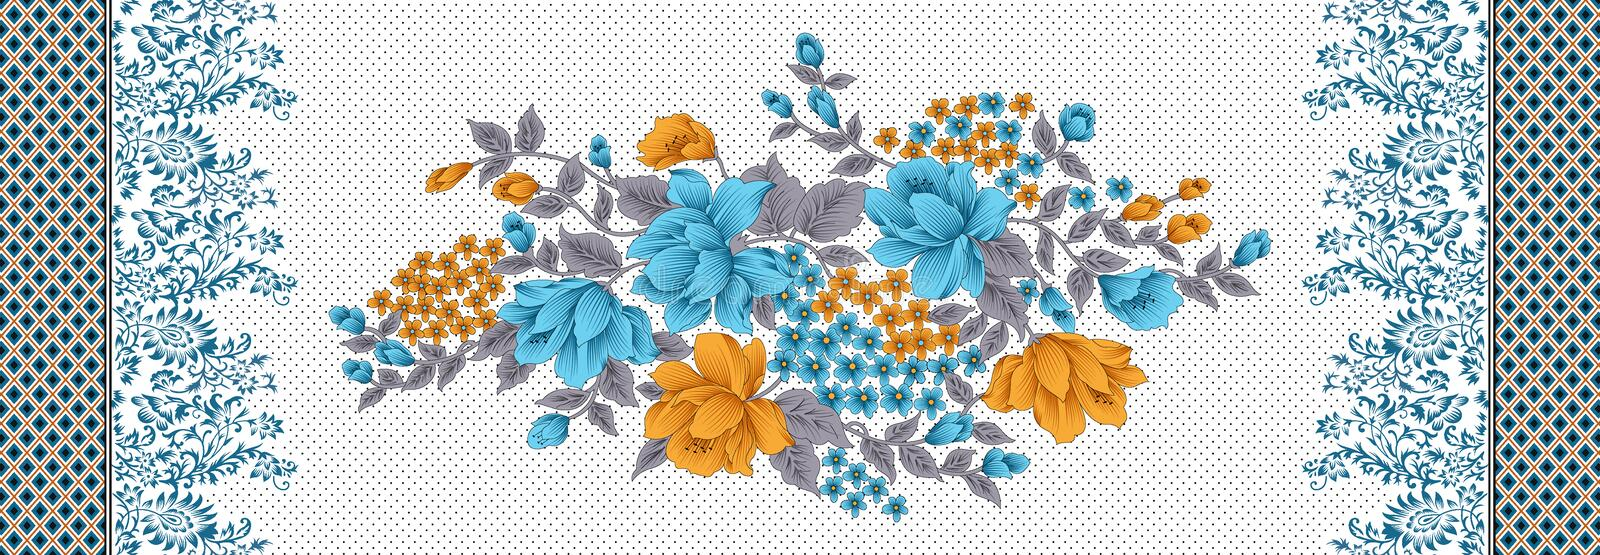 Floral beautiful flower pattern with border stock illustration